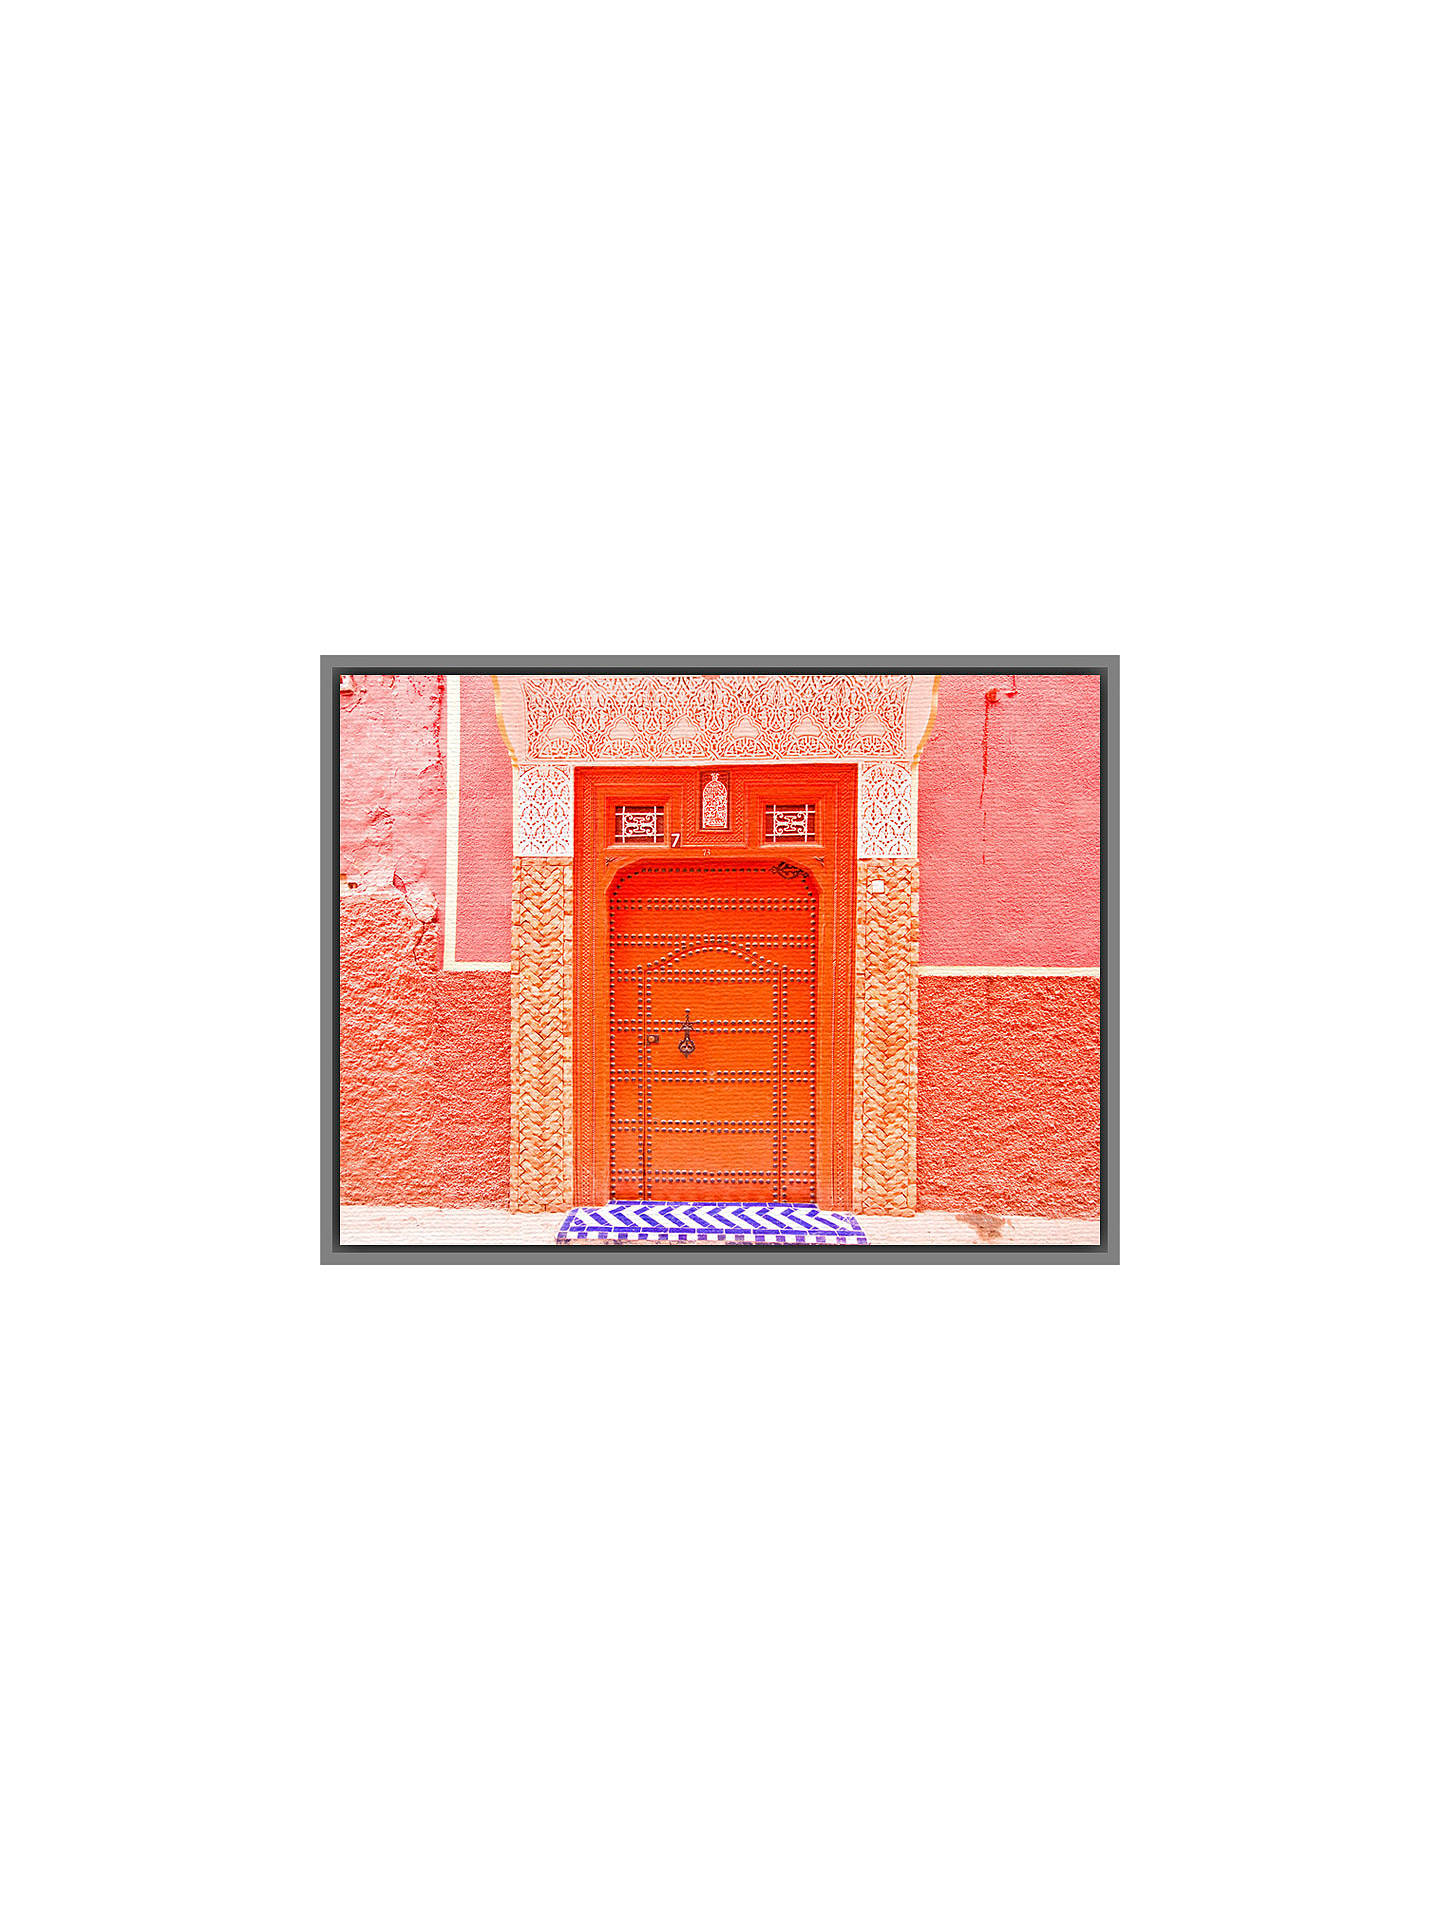 BuyKeri Bevan - The Pink City, Grey Framed Canvas, 40 x 50cm Online at johnlewis.com